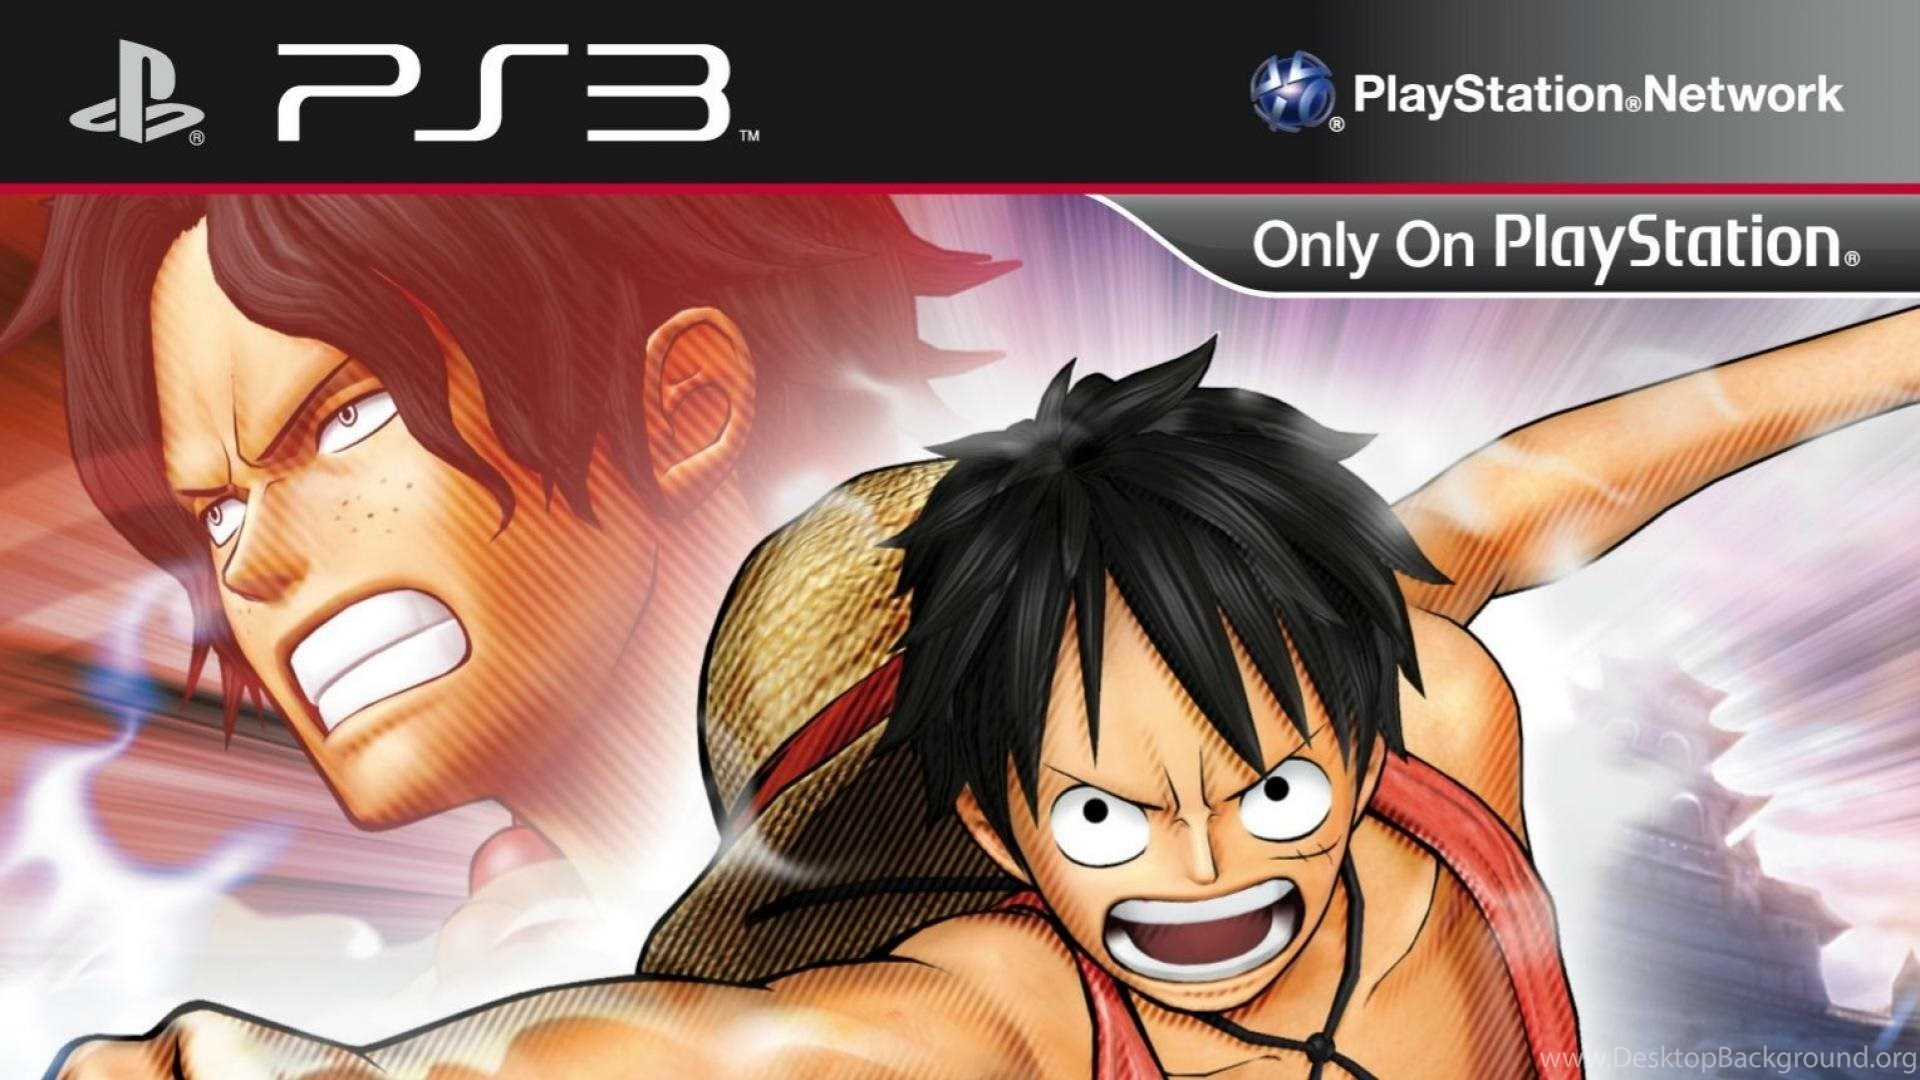 video games one piece (anime) ps3 wallpapers desktop background